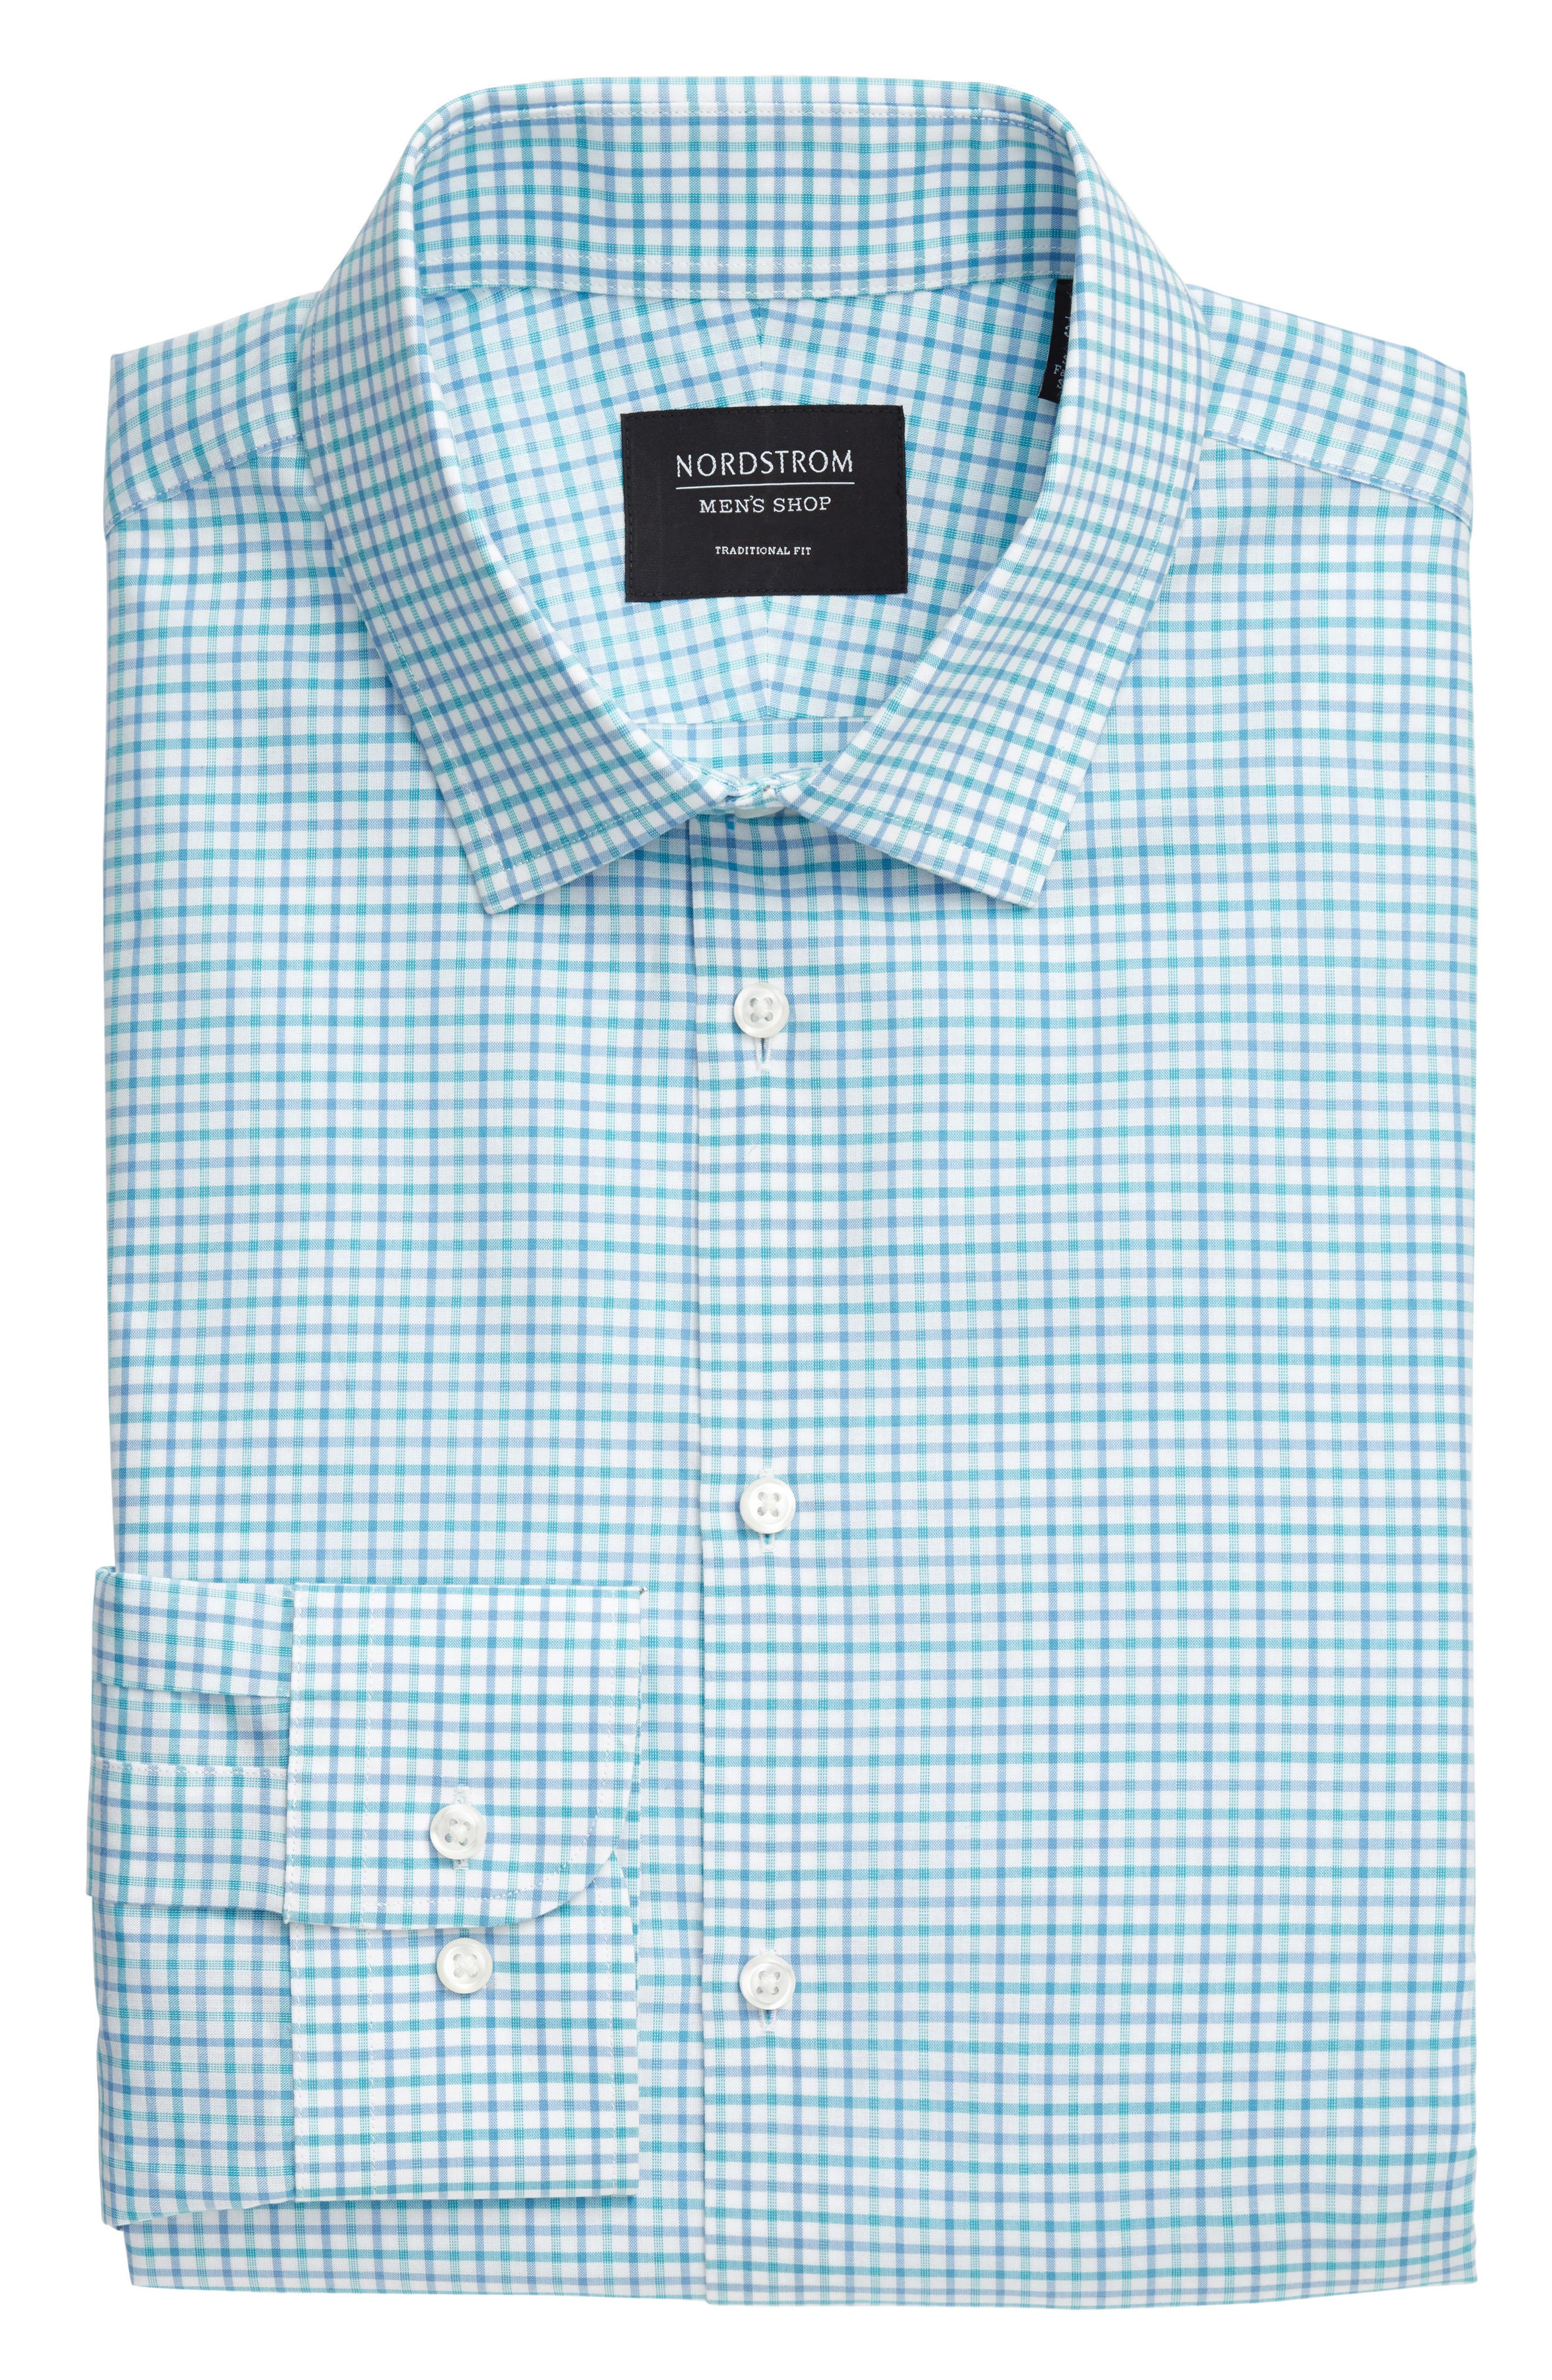 Nordstrom Men's Shop Traditional Fit Check Dress Shirt